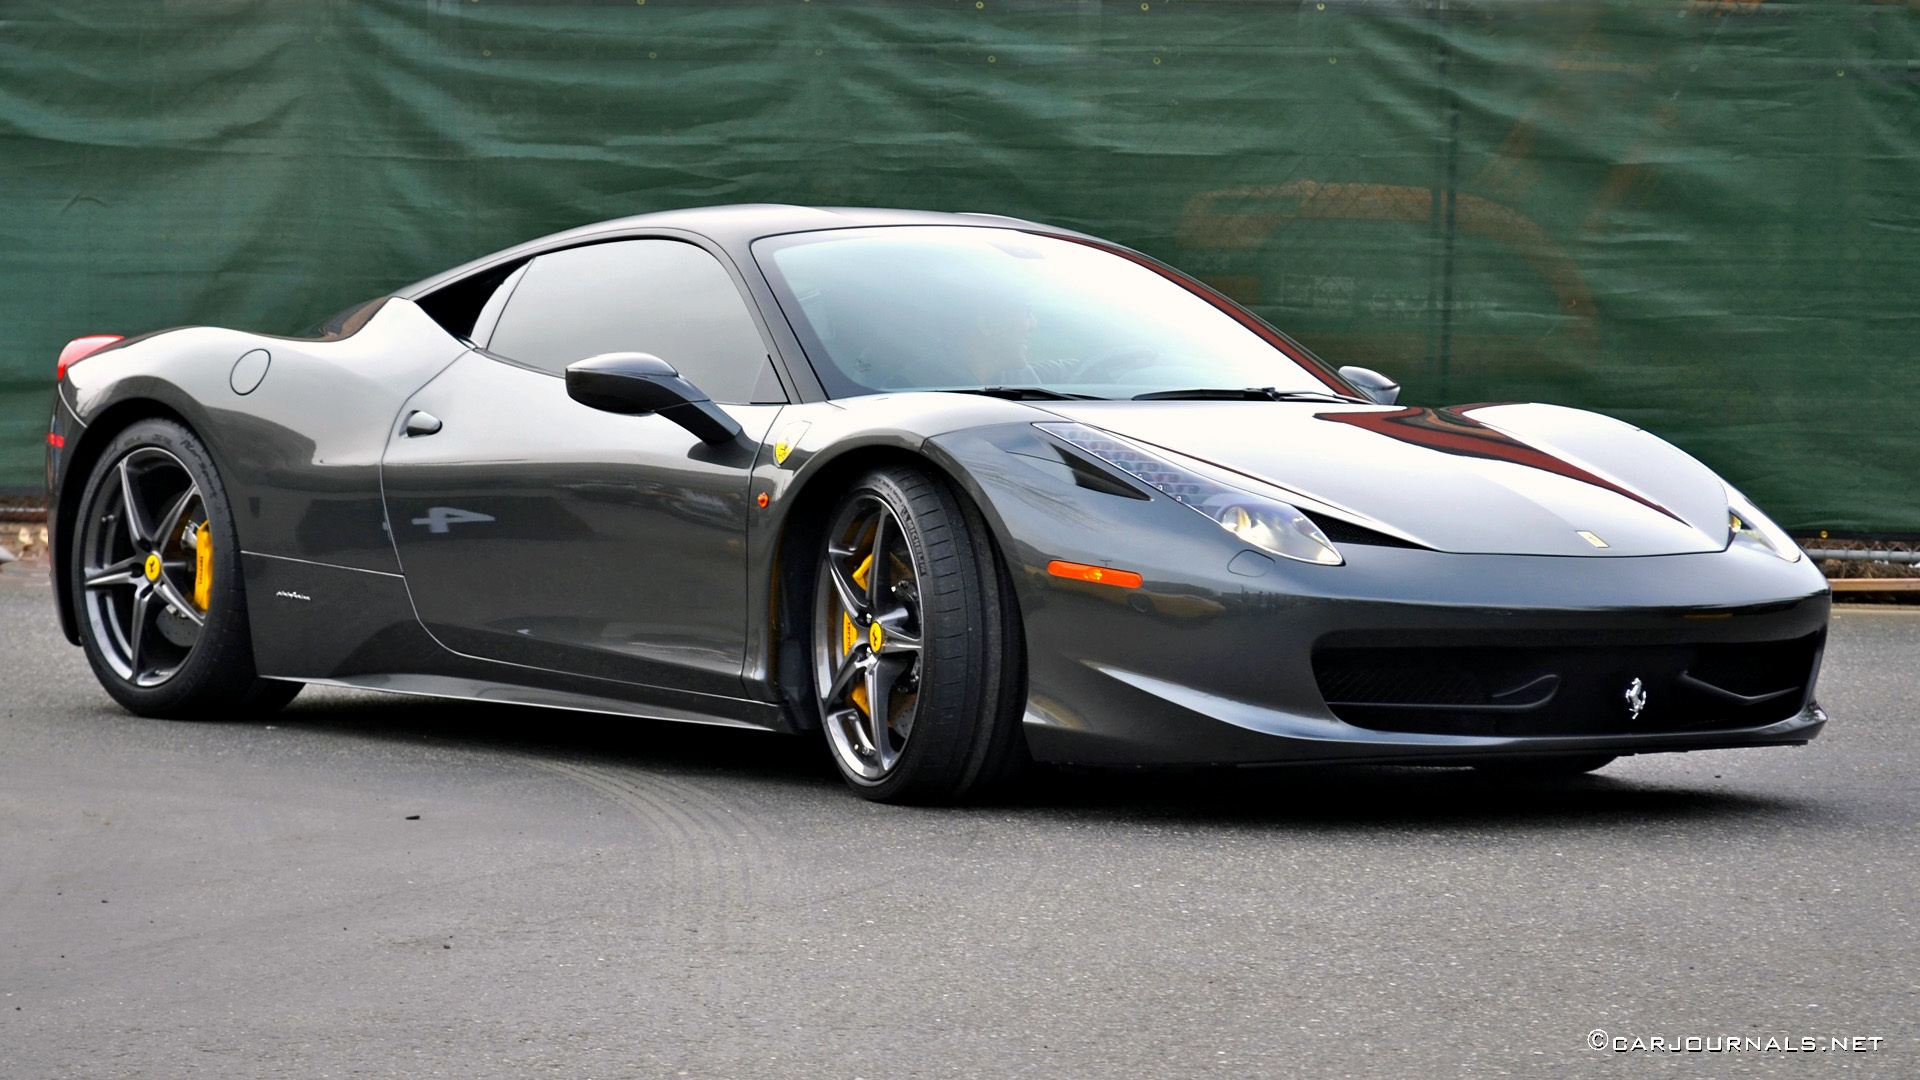 Ferrari 458 black wallpaper ferrari 458 black ferrari 458 italia hd wallpapers ferrari 458 italia car journals vanachro Choice Image